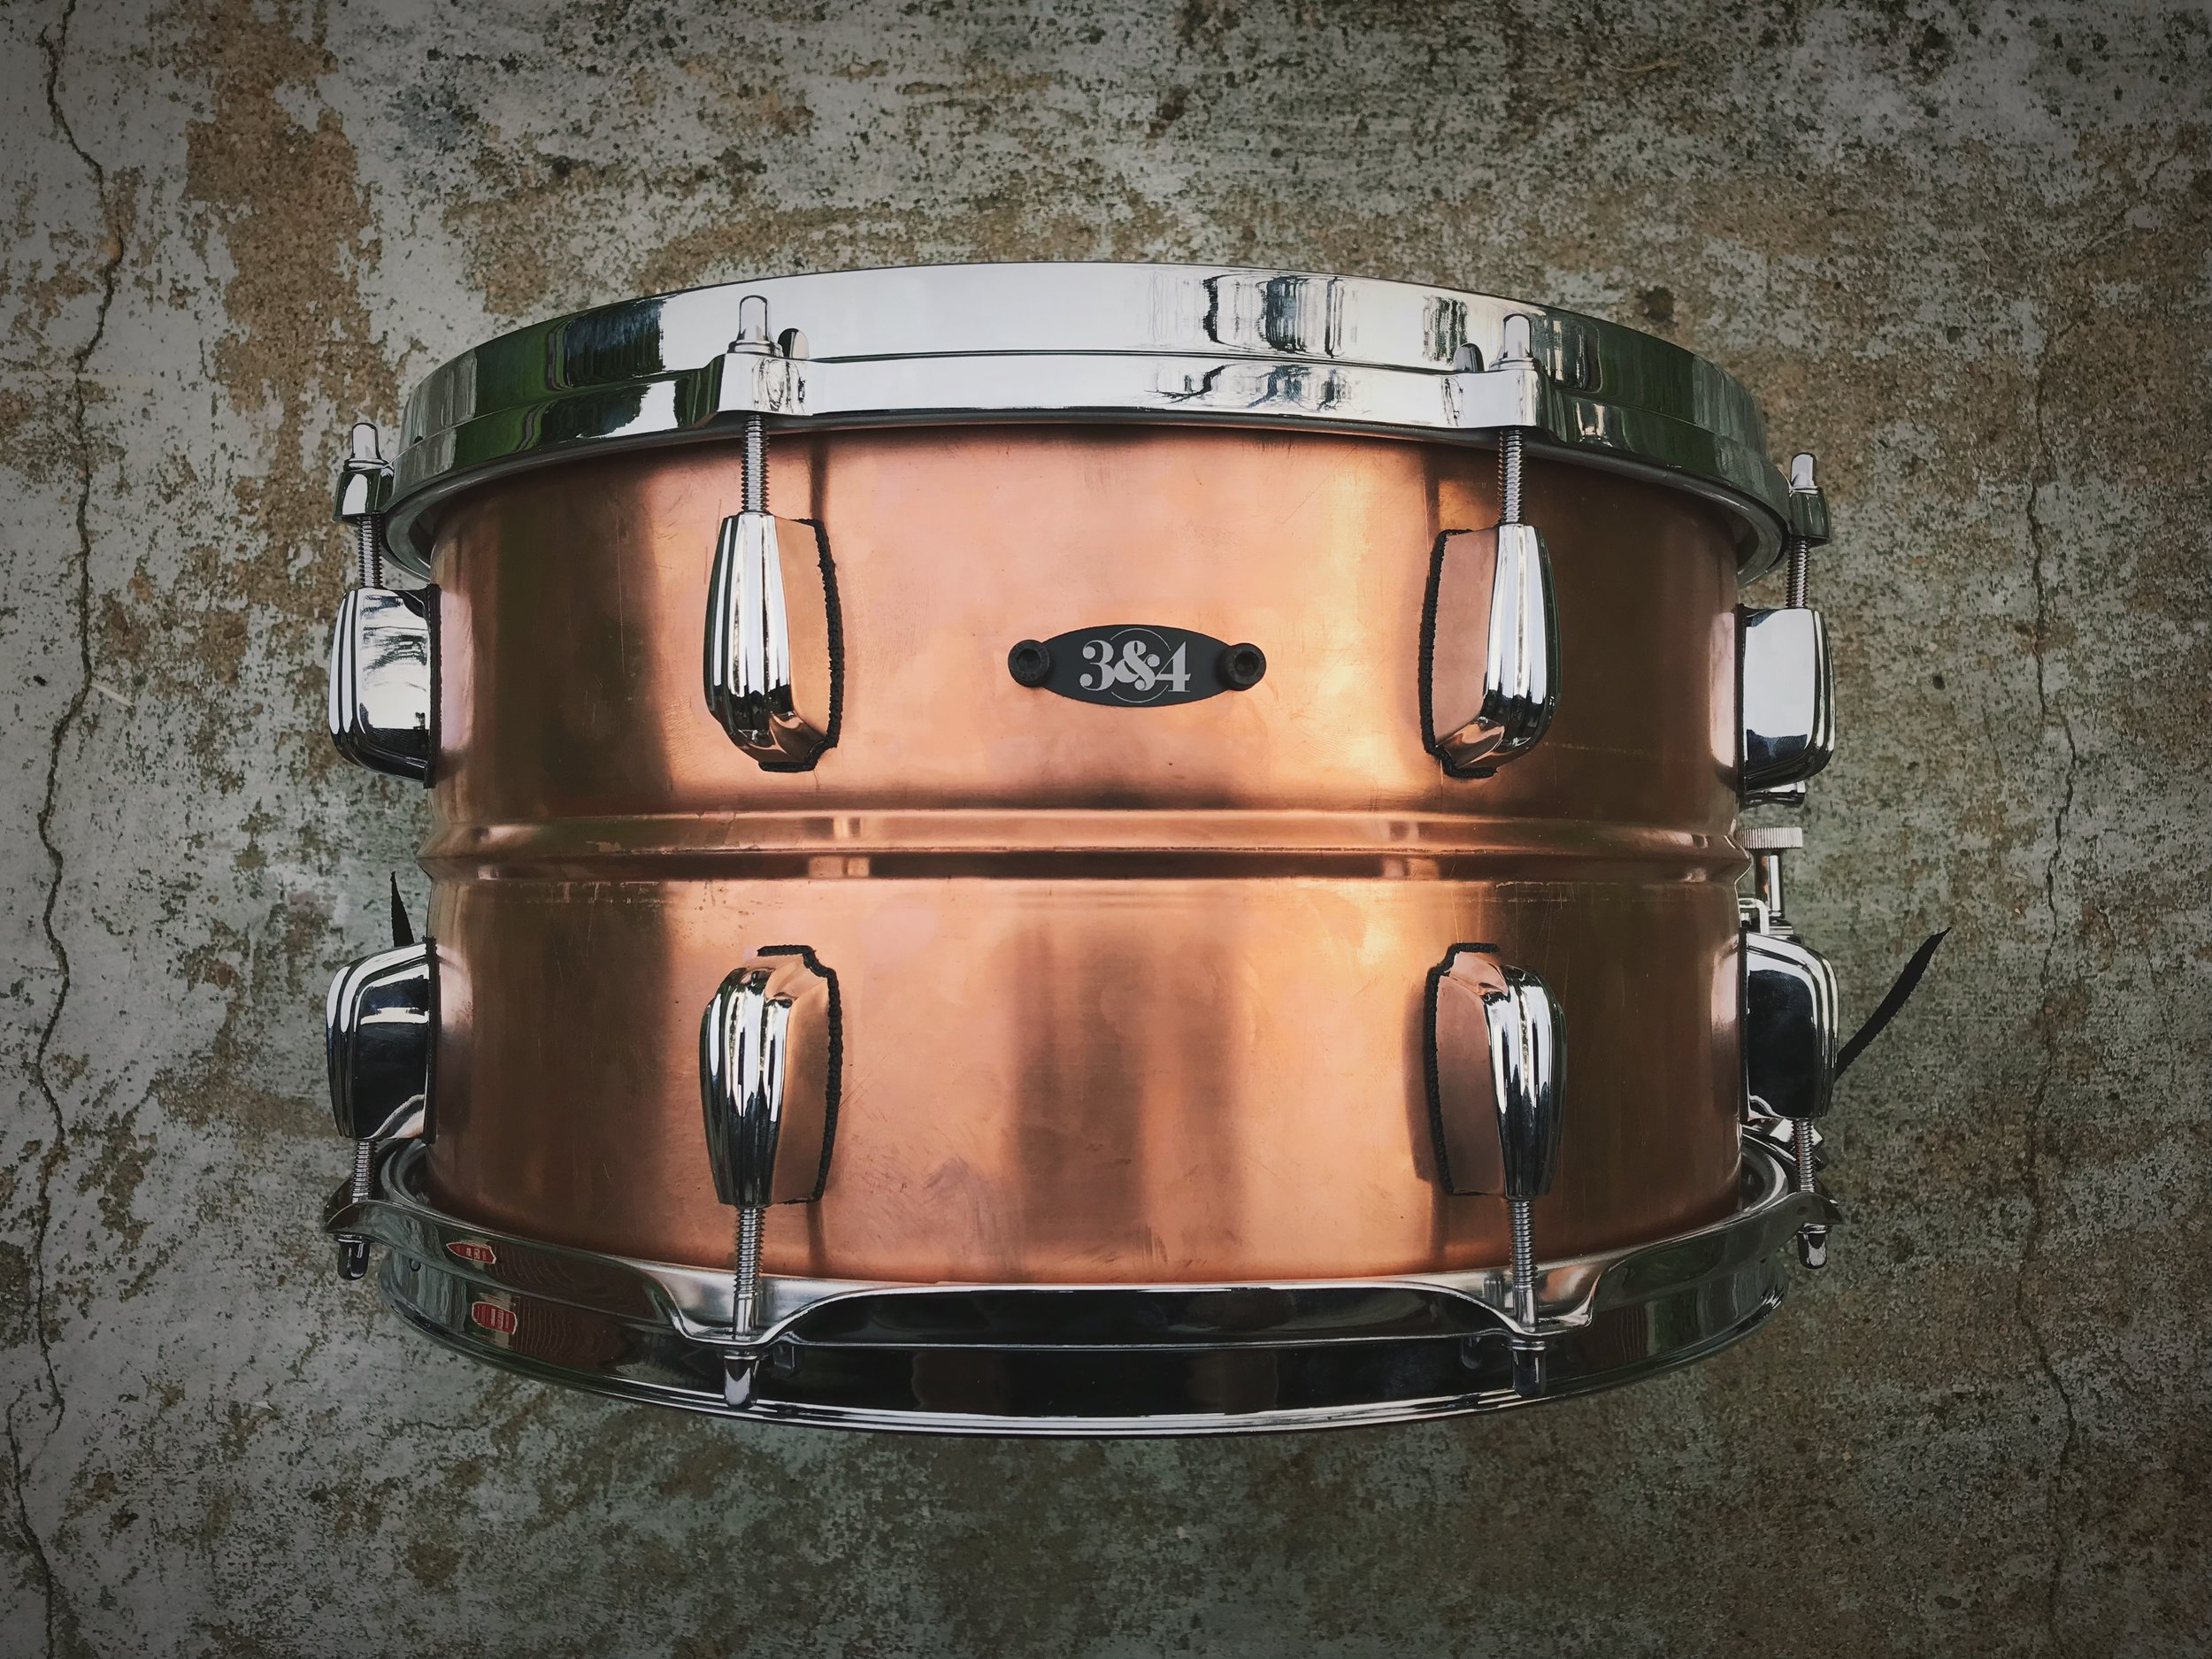 3rd&4thdrumscoppersnaredrum.JPG